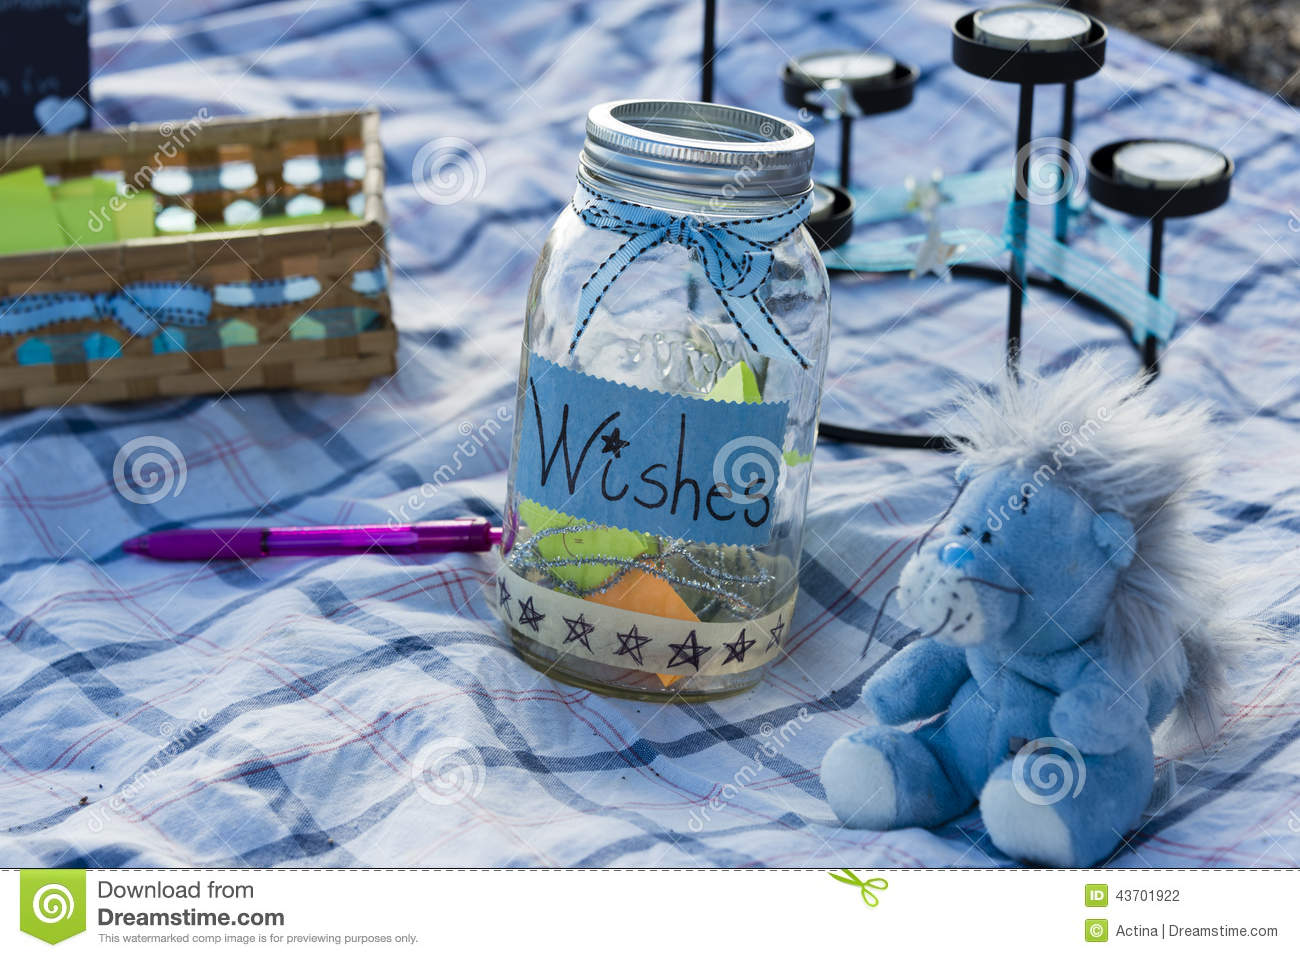 Birthday Decoration At Party With Wish Jar And Blue Lion Plush Toy On Checkered Tablecloth